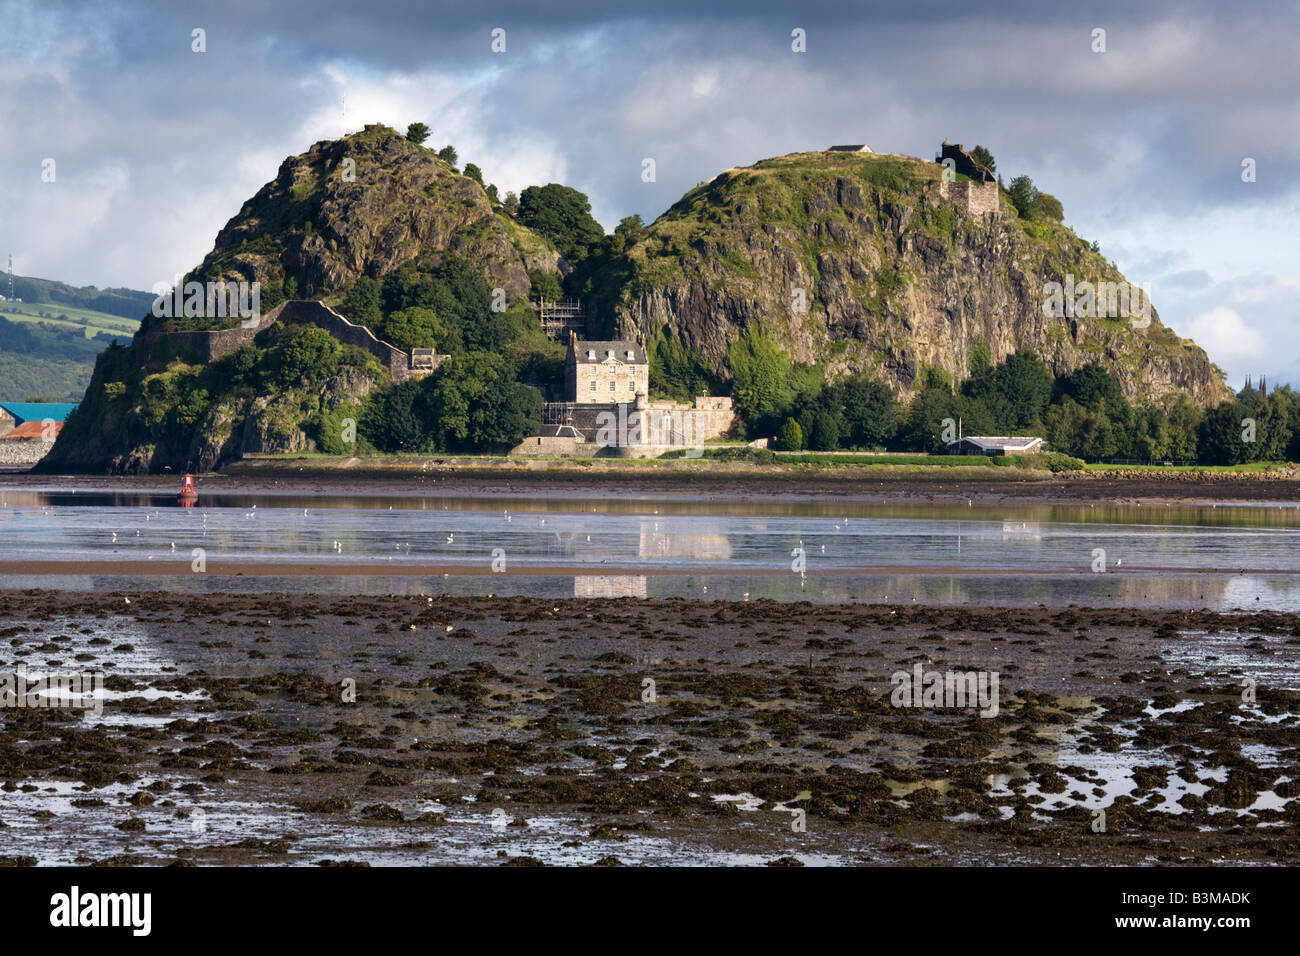 Dumbarton Rock and Dumbarton castle at low tide from West Ferry on the river Clyde, Scotland. - Stock Image